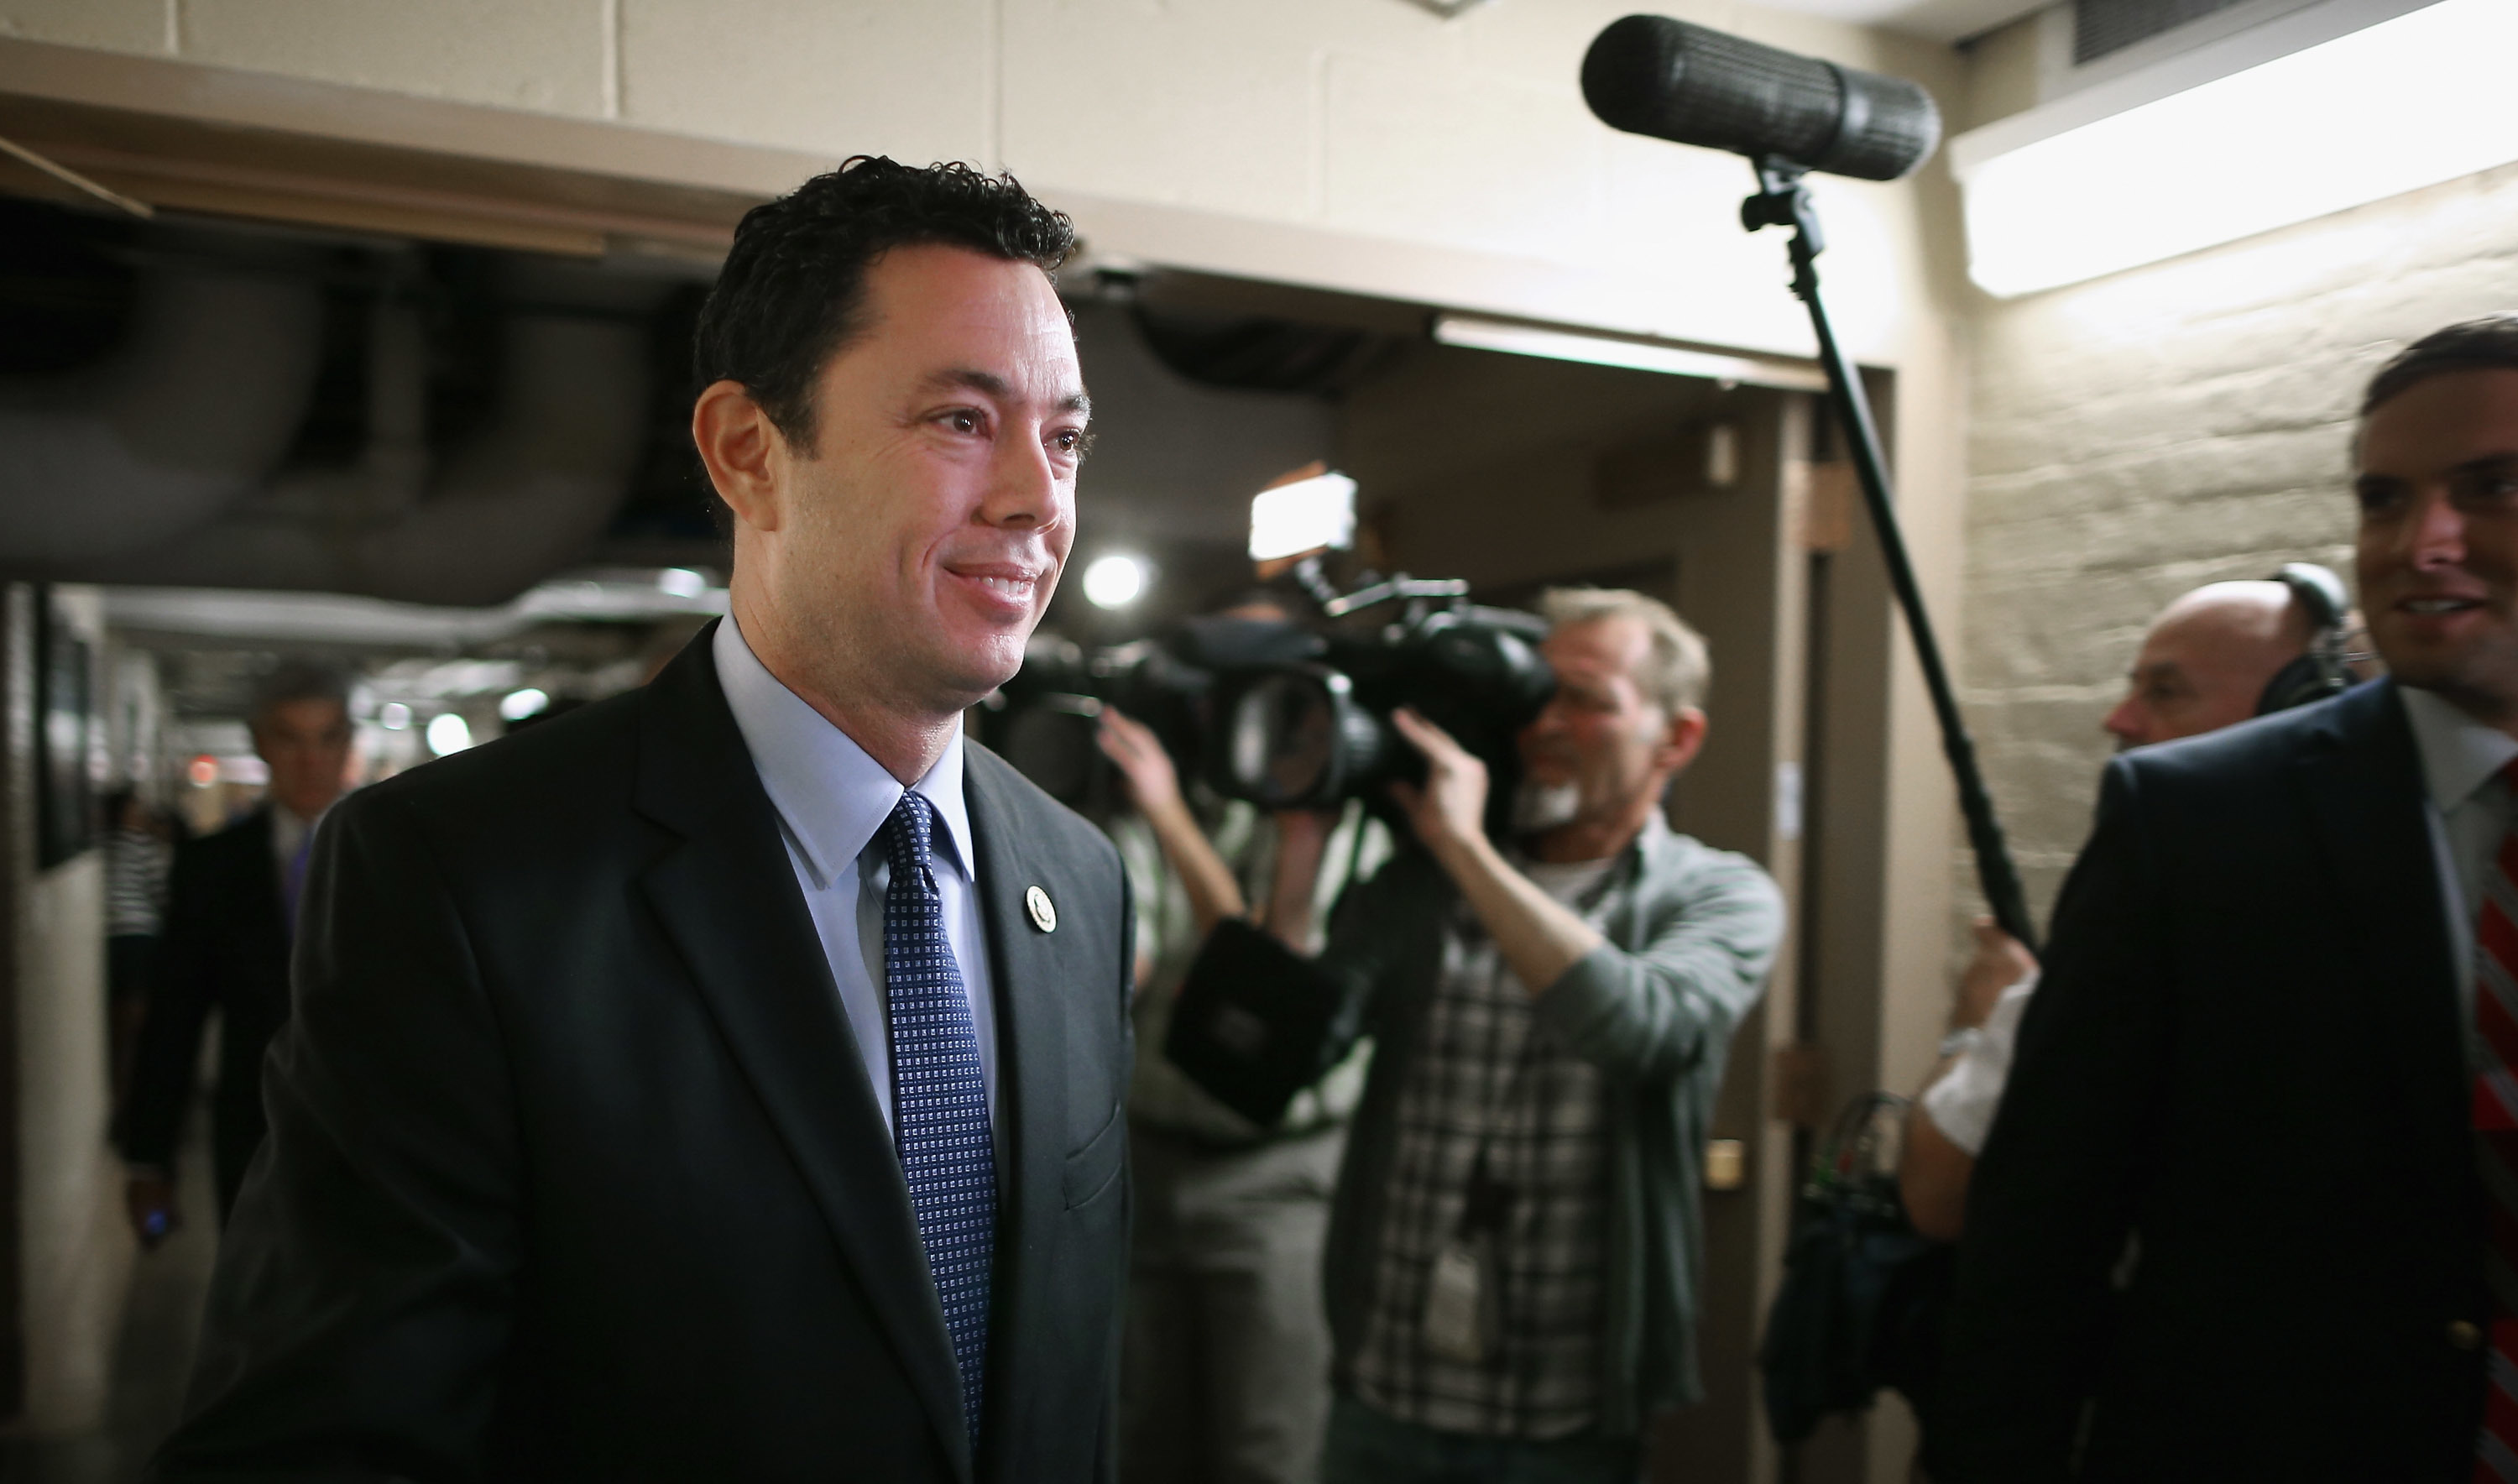 Jason Chaffetz expected to announce early resignation from Congress